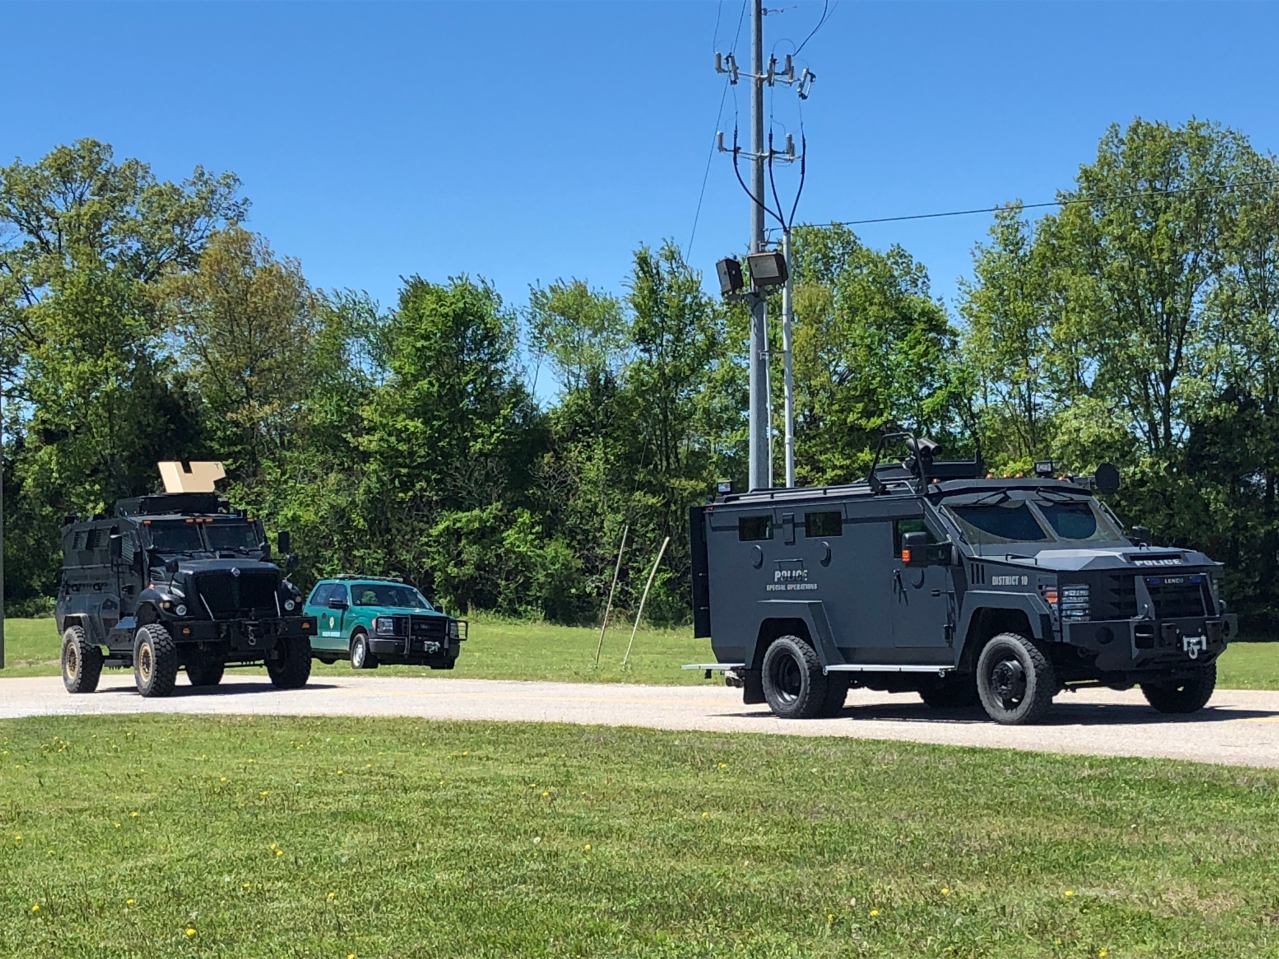 Armored vehicles leave Friendship Elementary School with other law enforcement officials in response to an allegedly armed suspect barricaded in a Friendship residence Saturday at around 12:45 p.m.